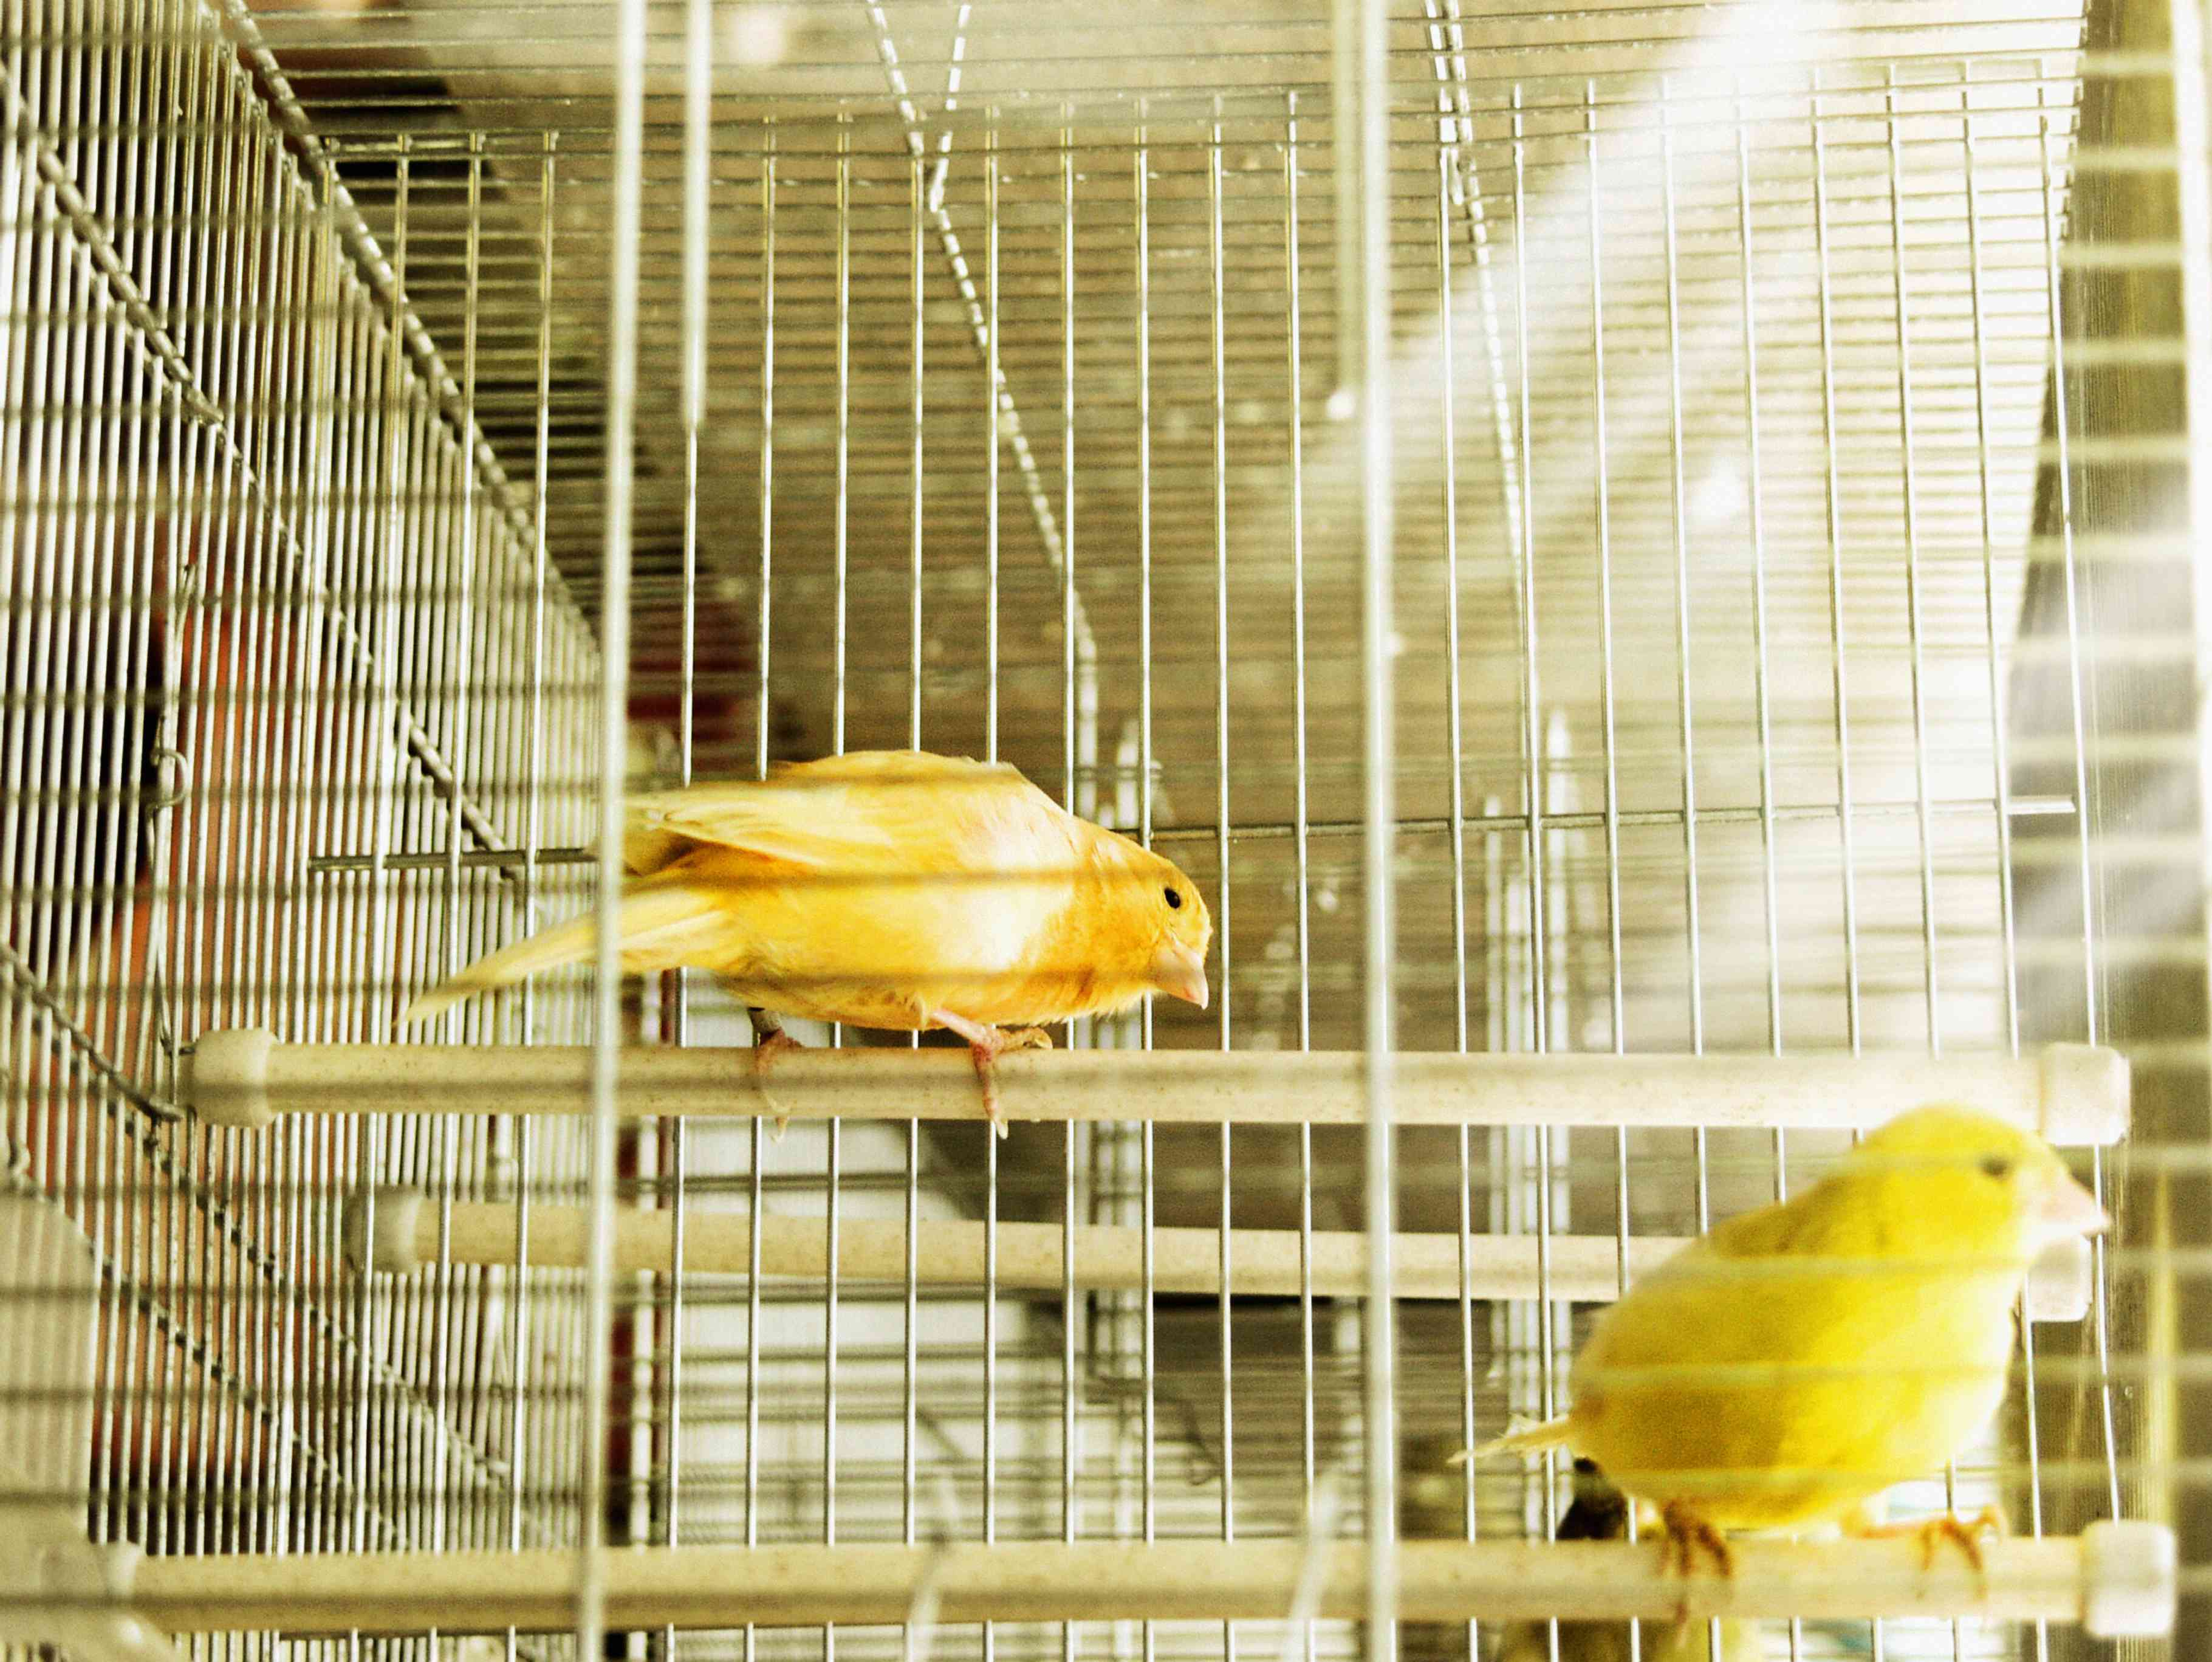 Two caged canaries